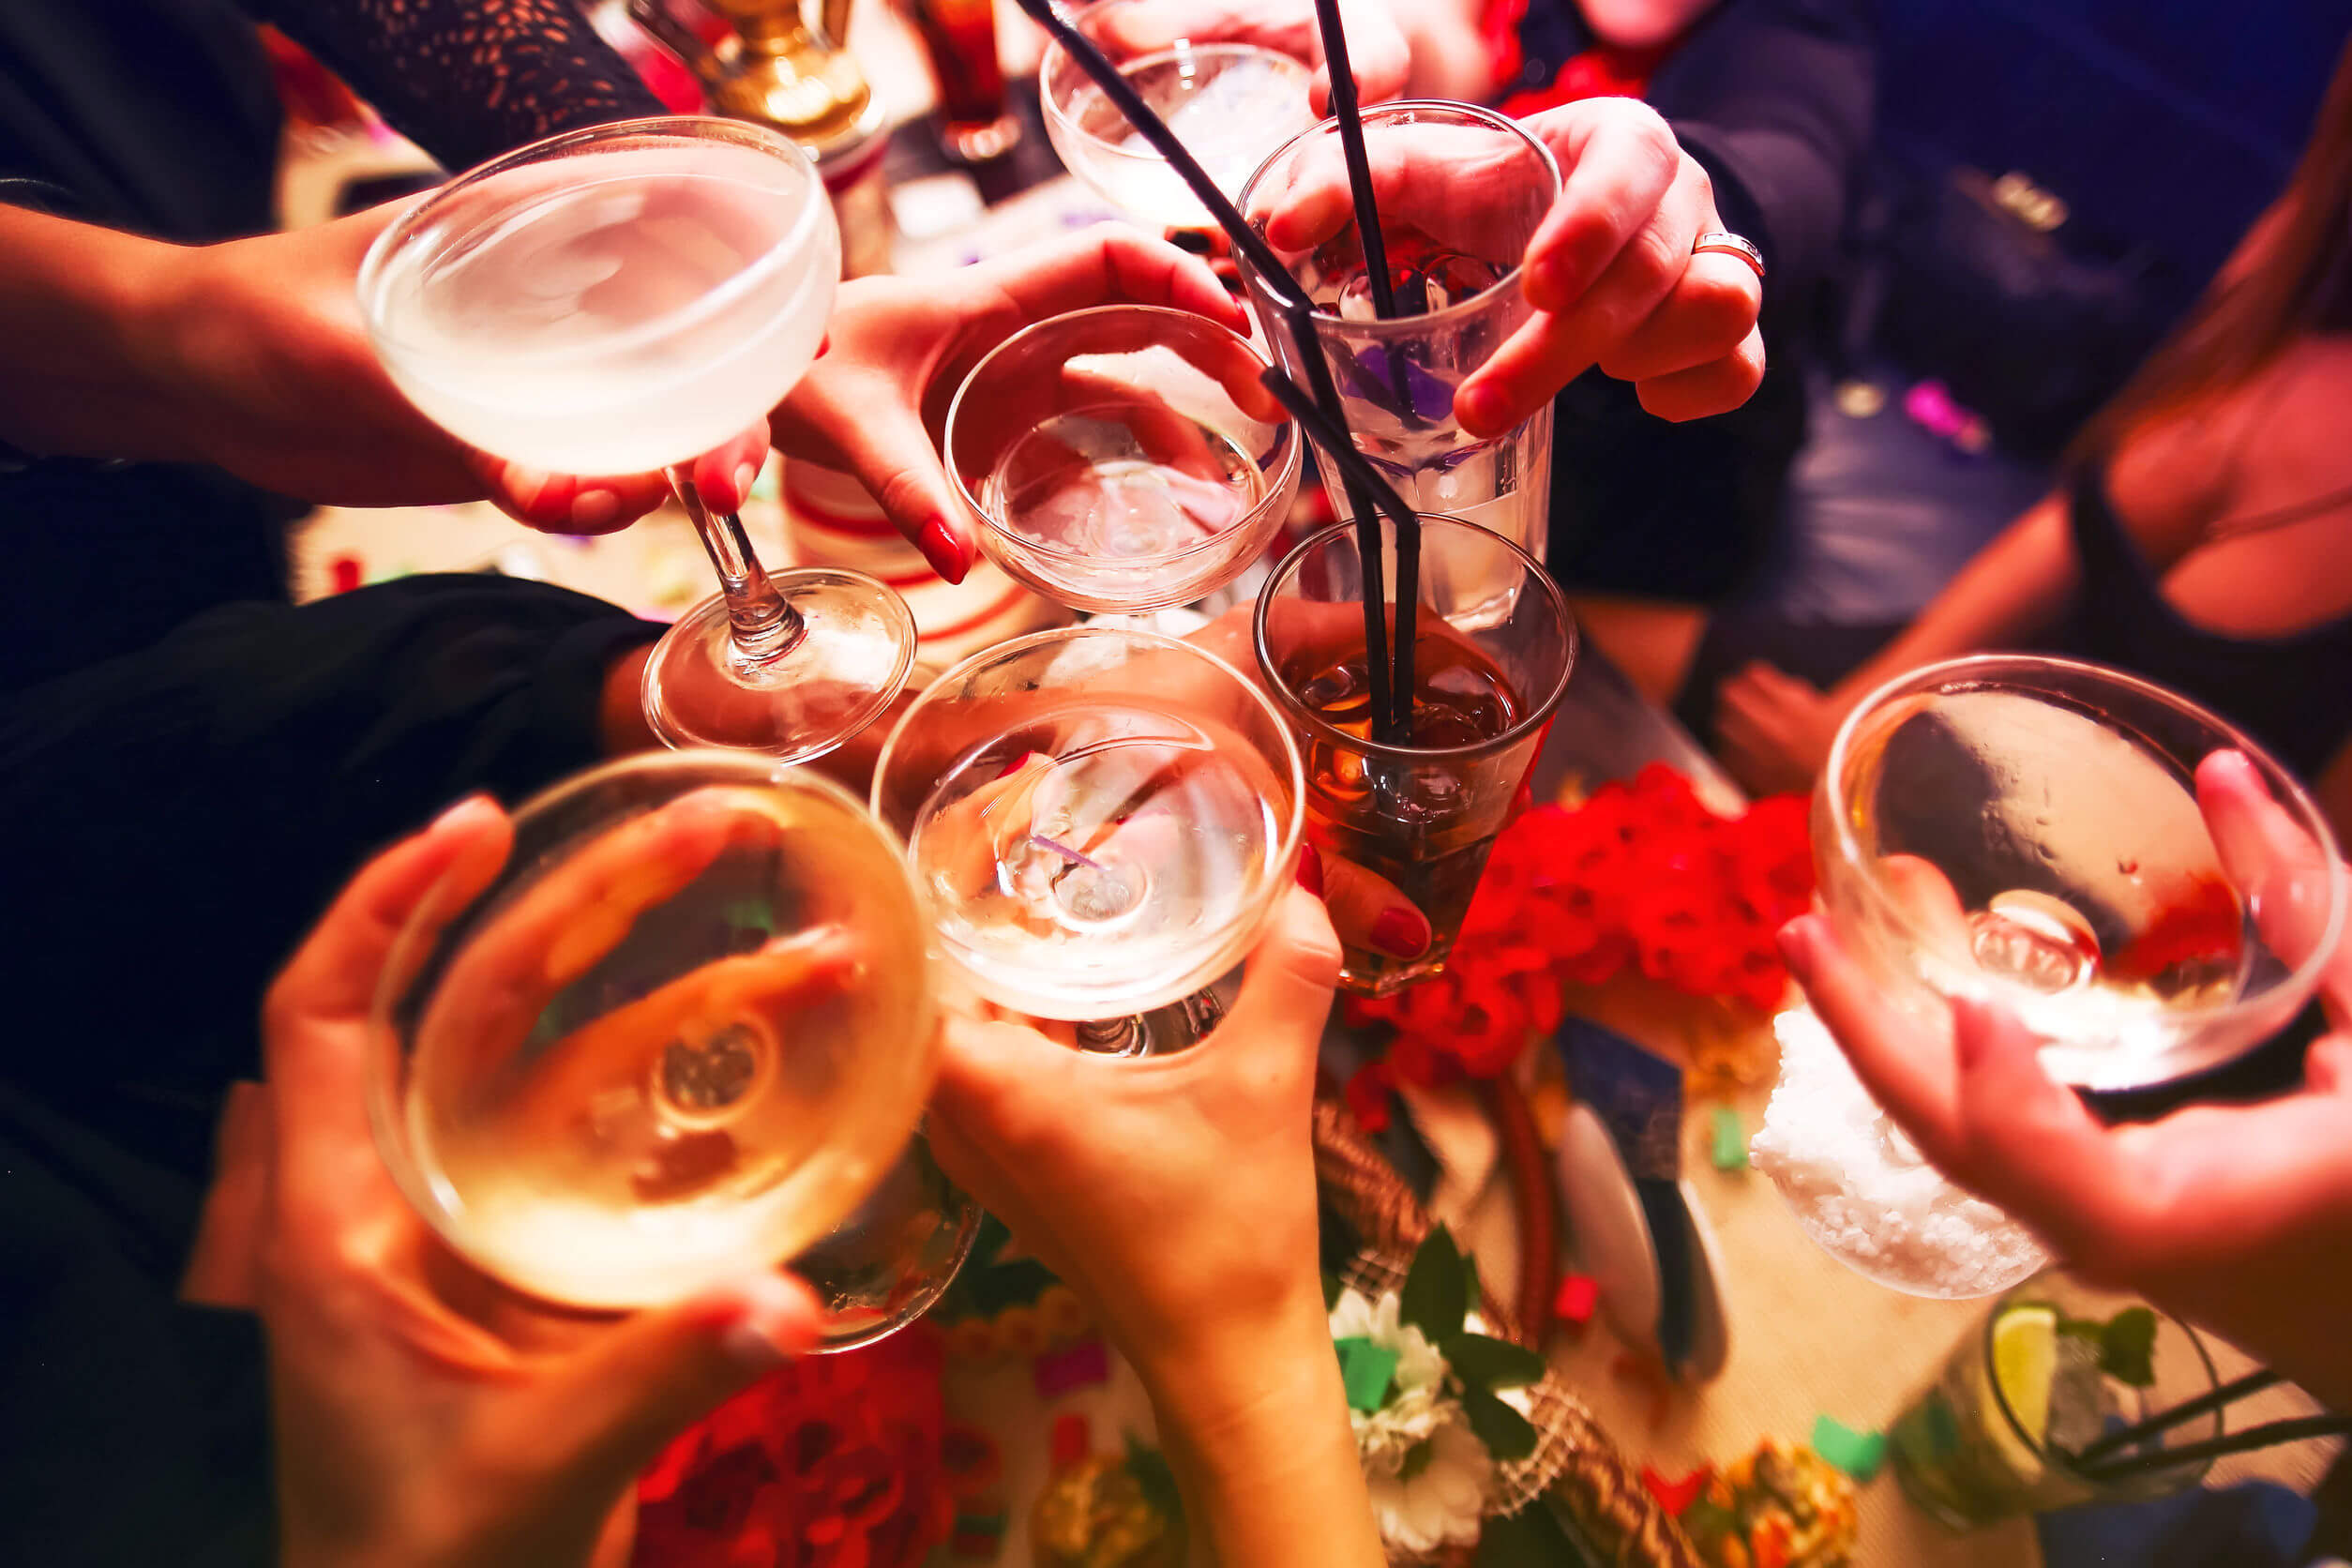 Winter affects diet due to alcohol consumption.